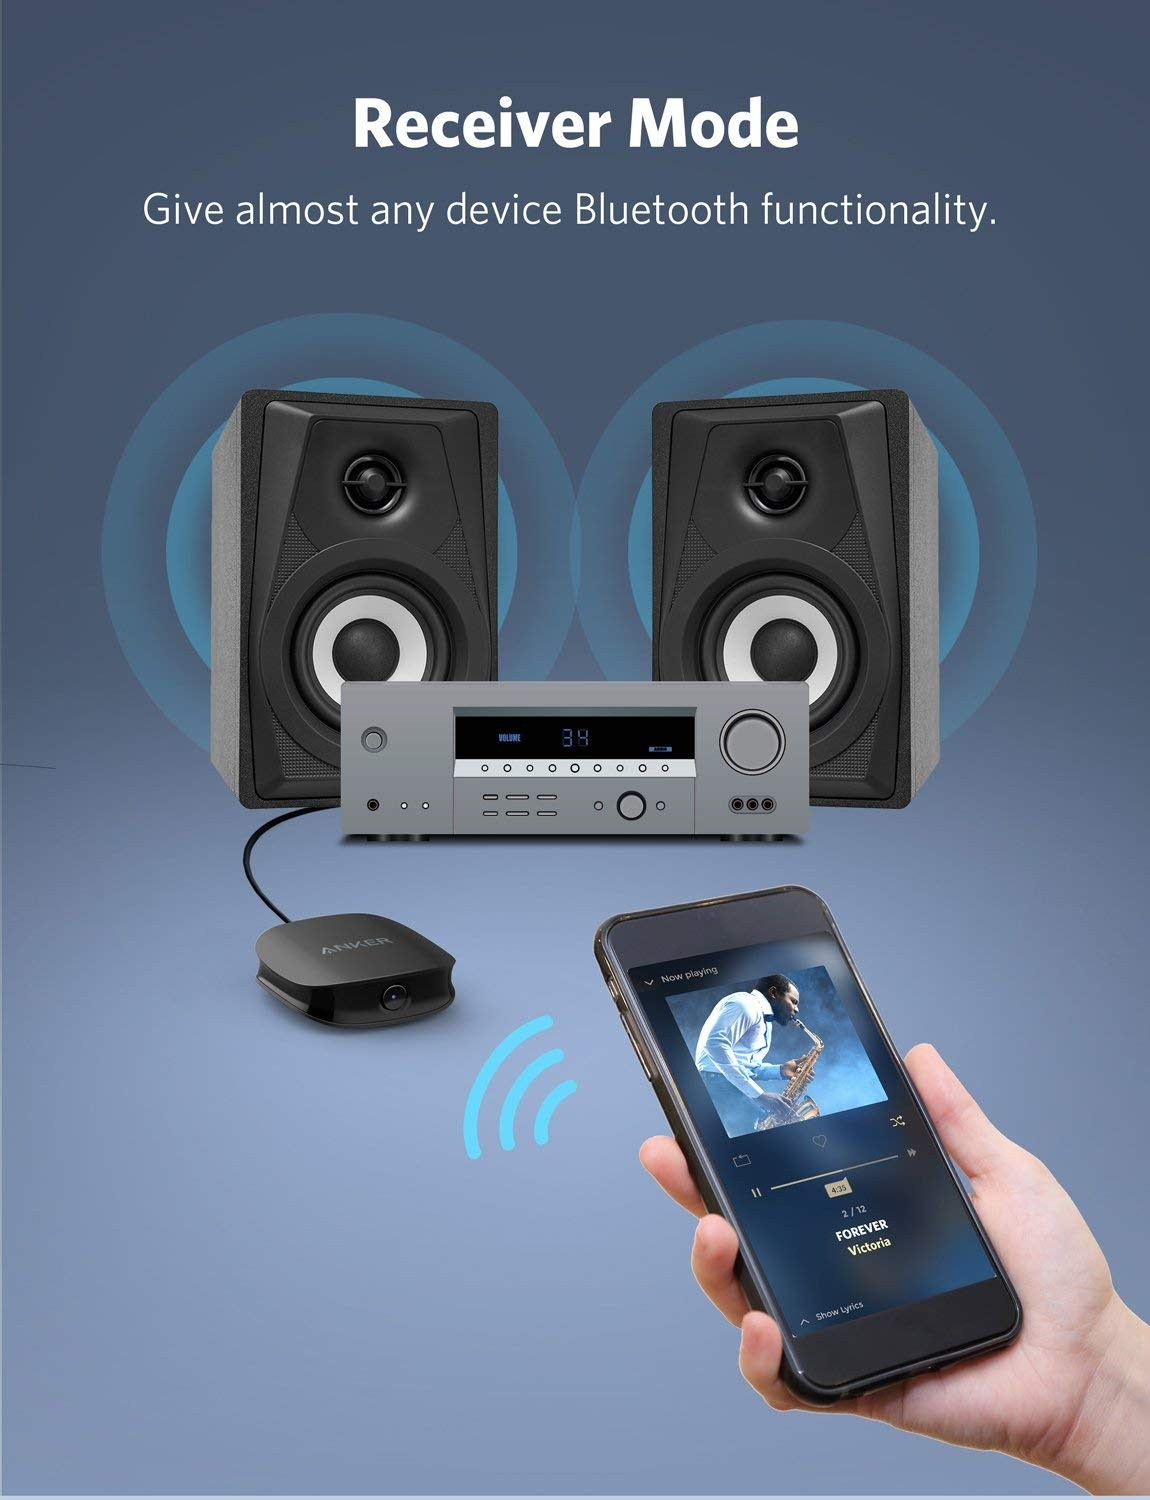 Anker Soundsync Bluetooth 2-in-1 Transmitter Receiver Bluetooth 5, HD Audio Lag-Free Synchronization AUX/RCA/Optical Connection TV Home Stereo System, AK-A3341011